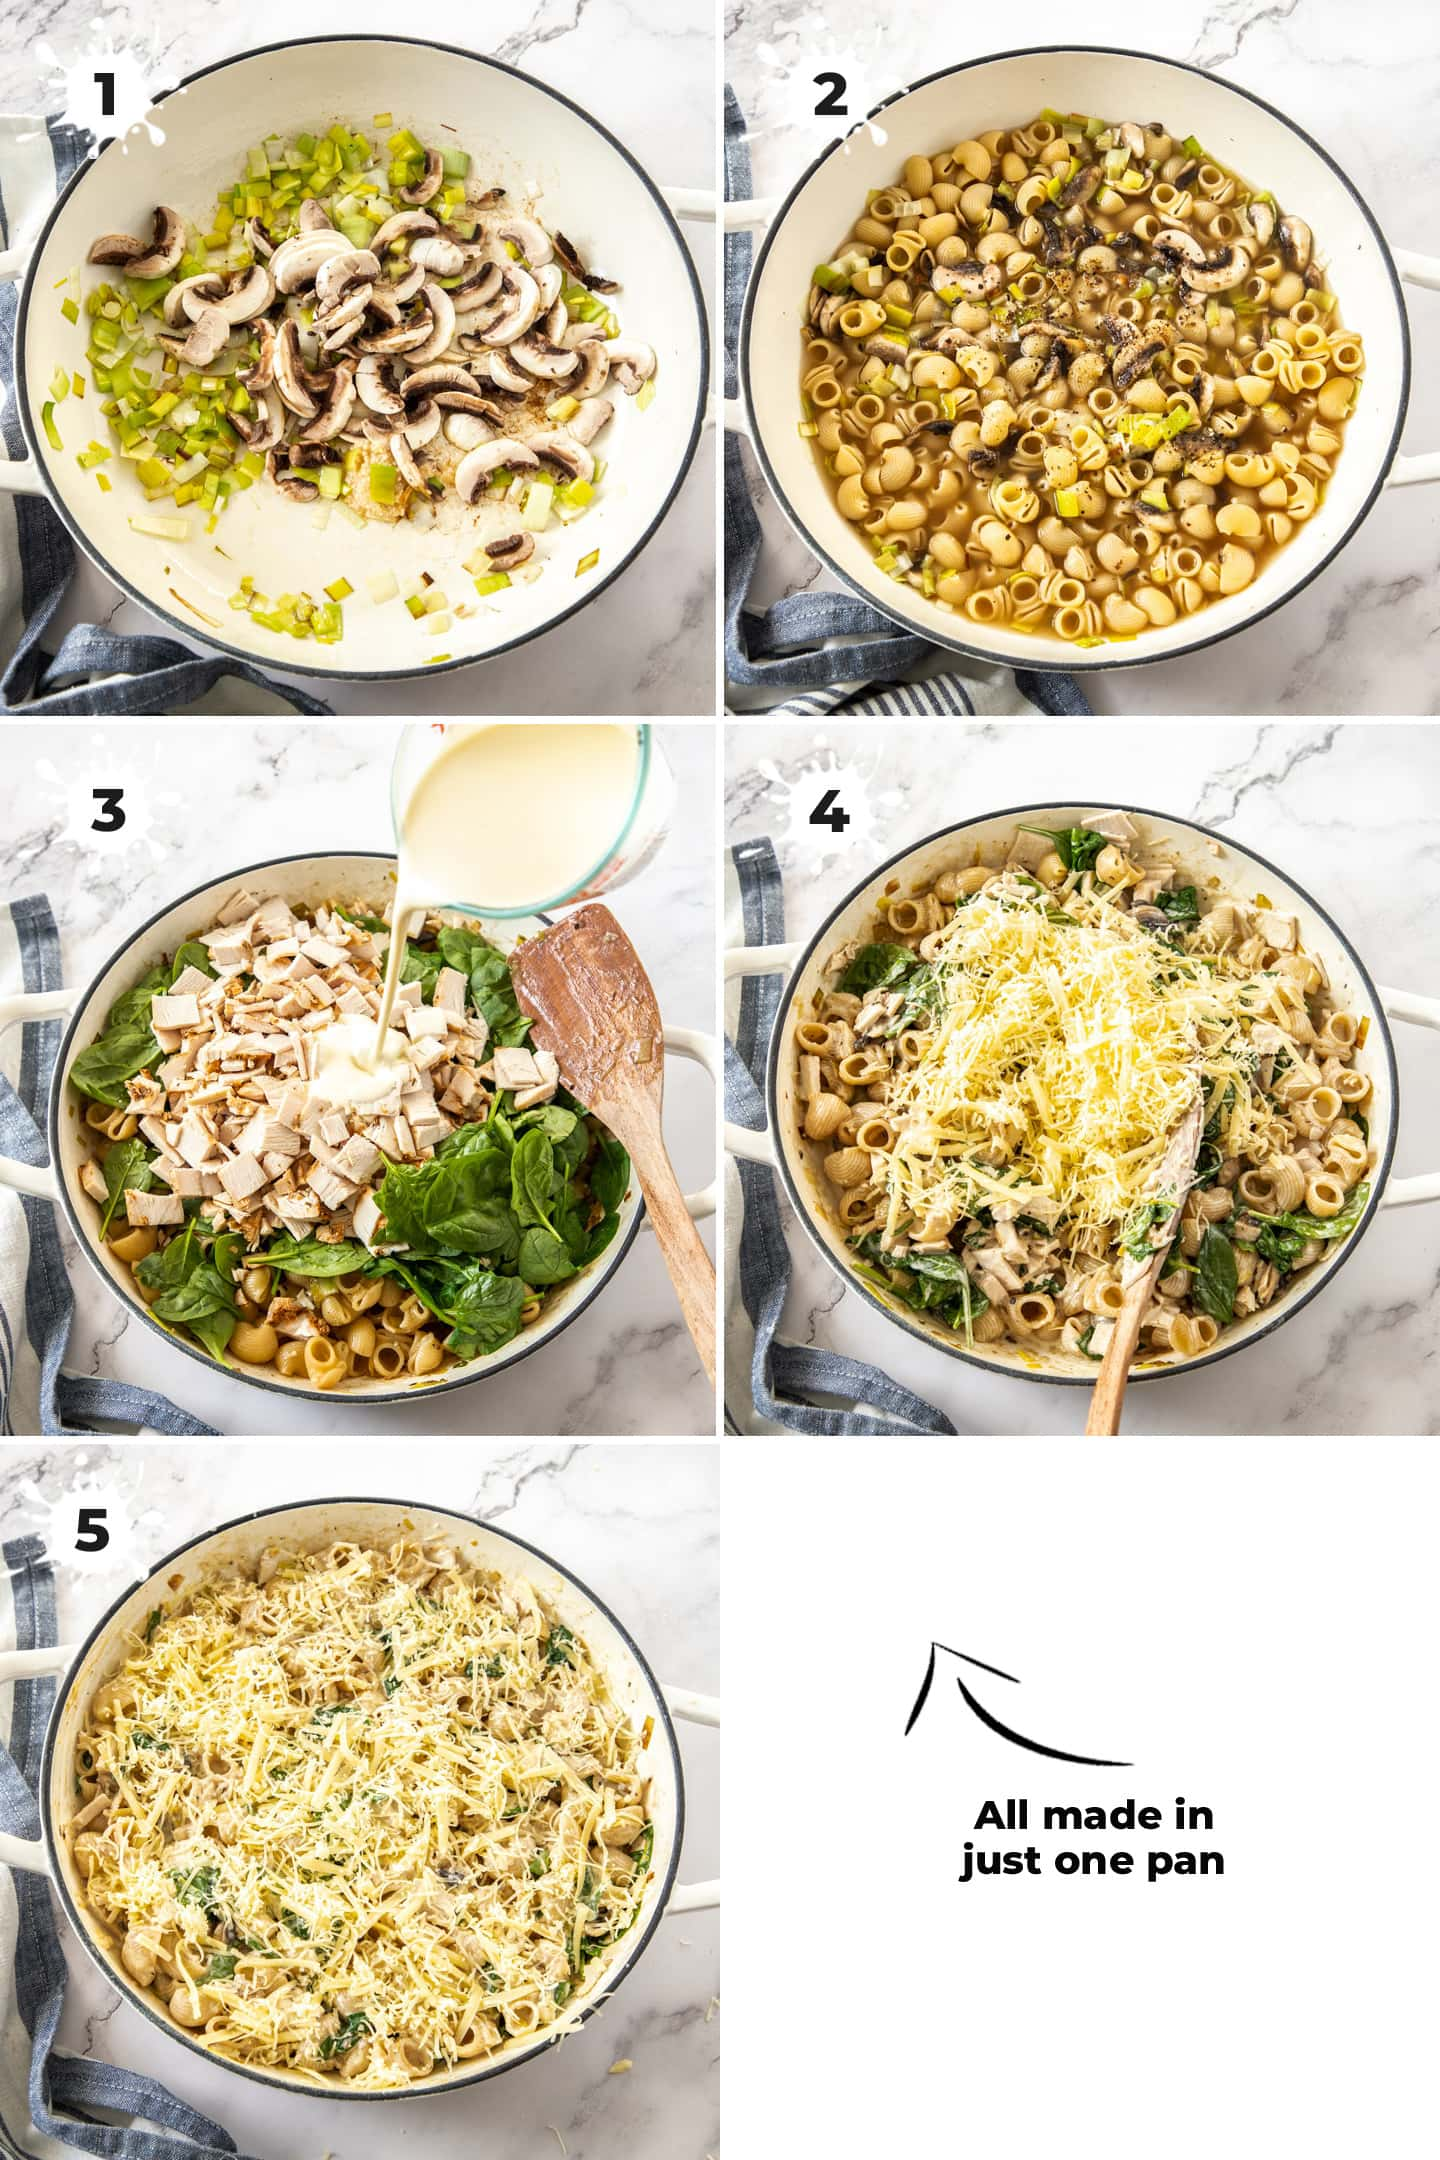 5 images showing a white casserole dish and ingredients being added